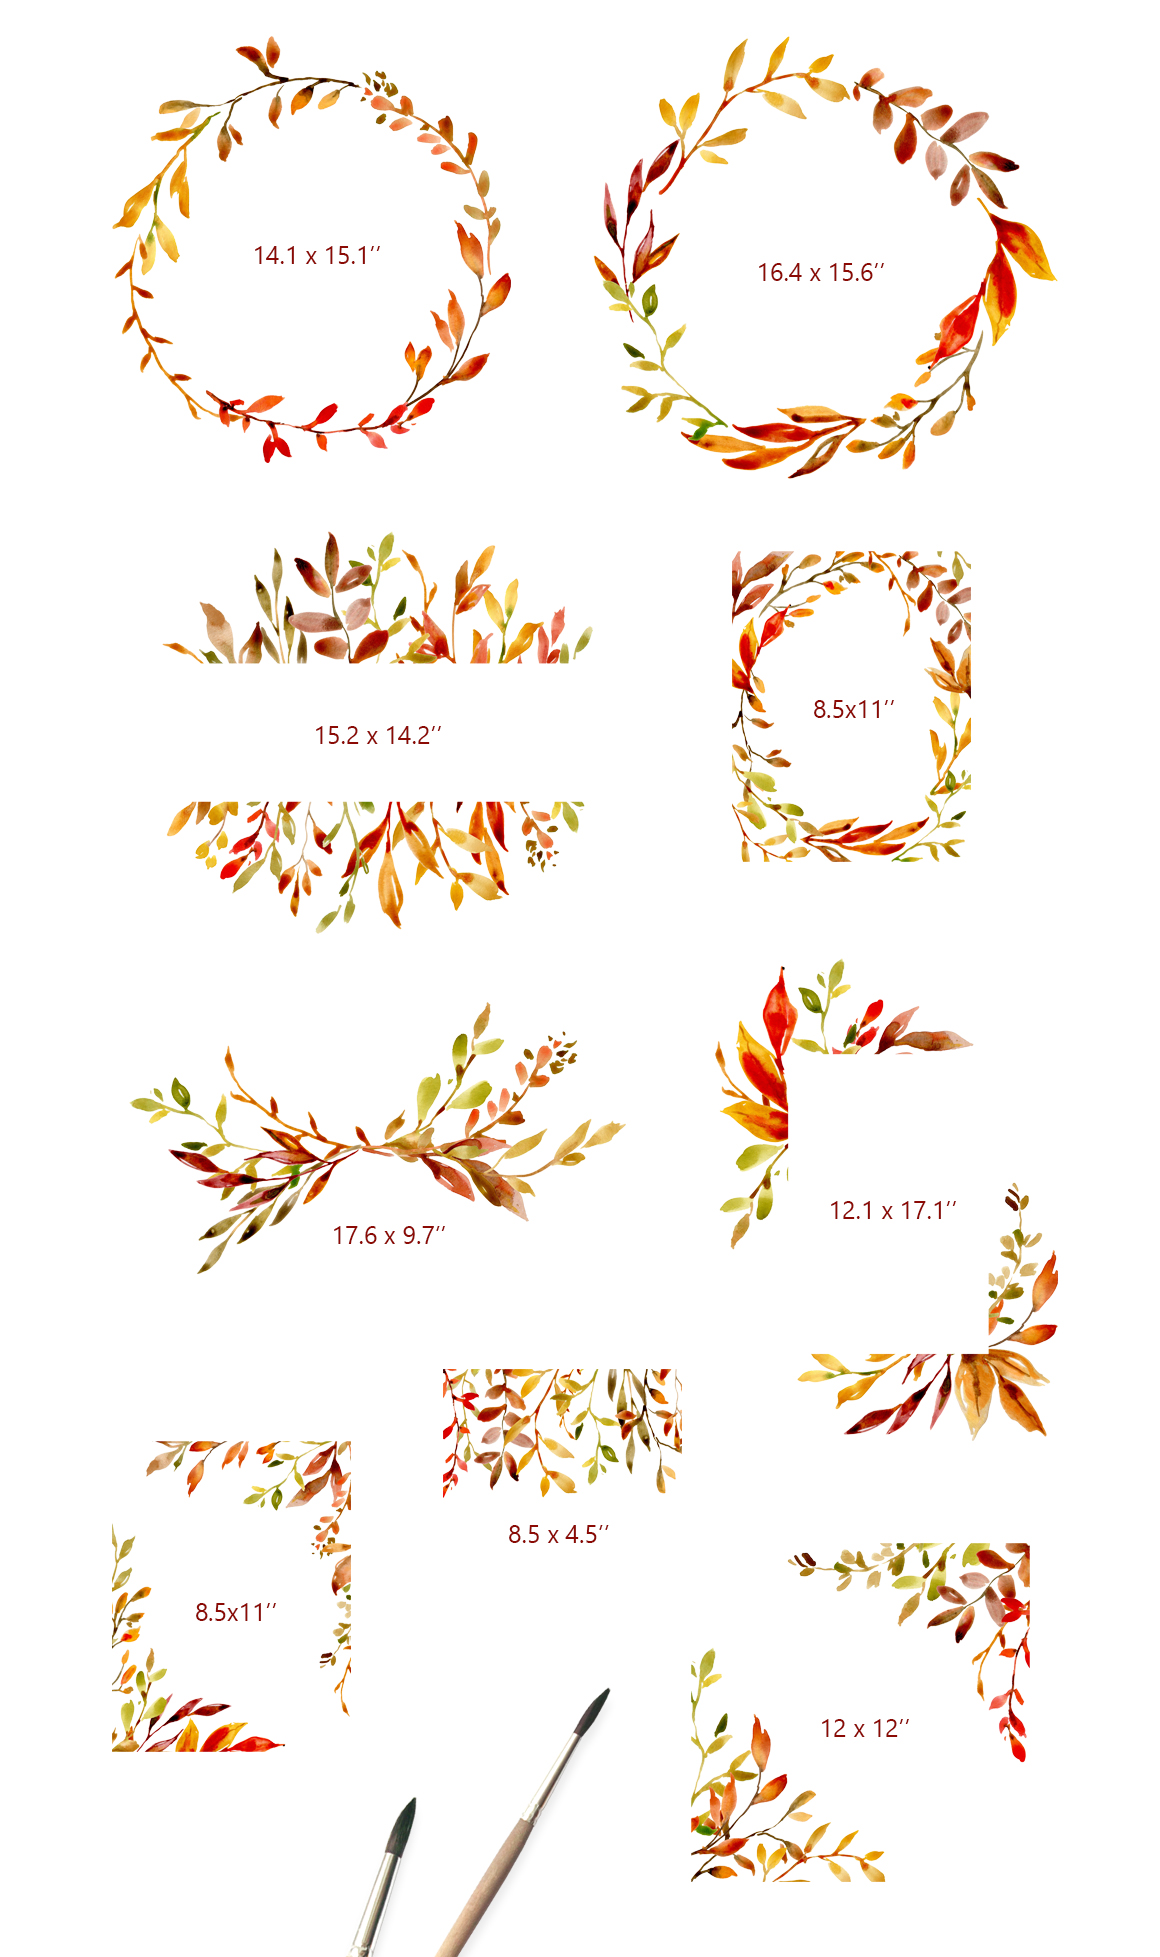 Watercolor Autumn Leaves & Branches example image 3